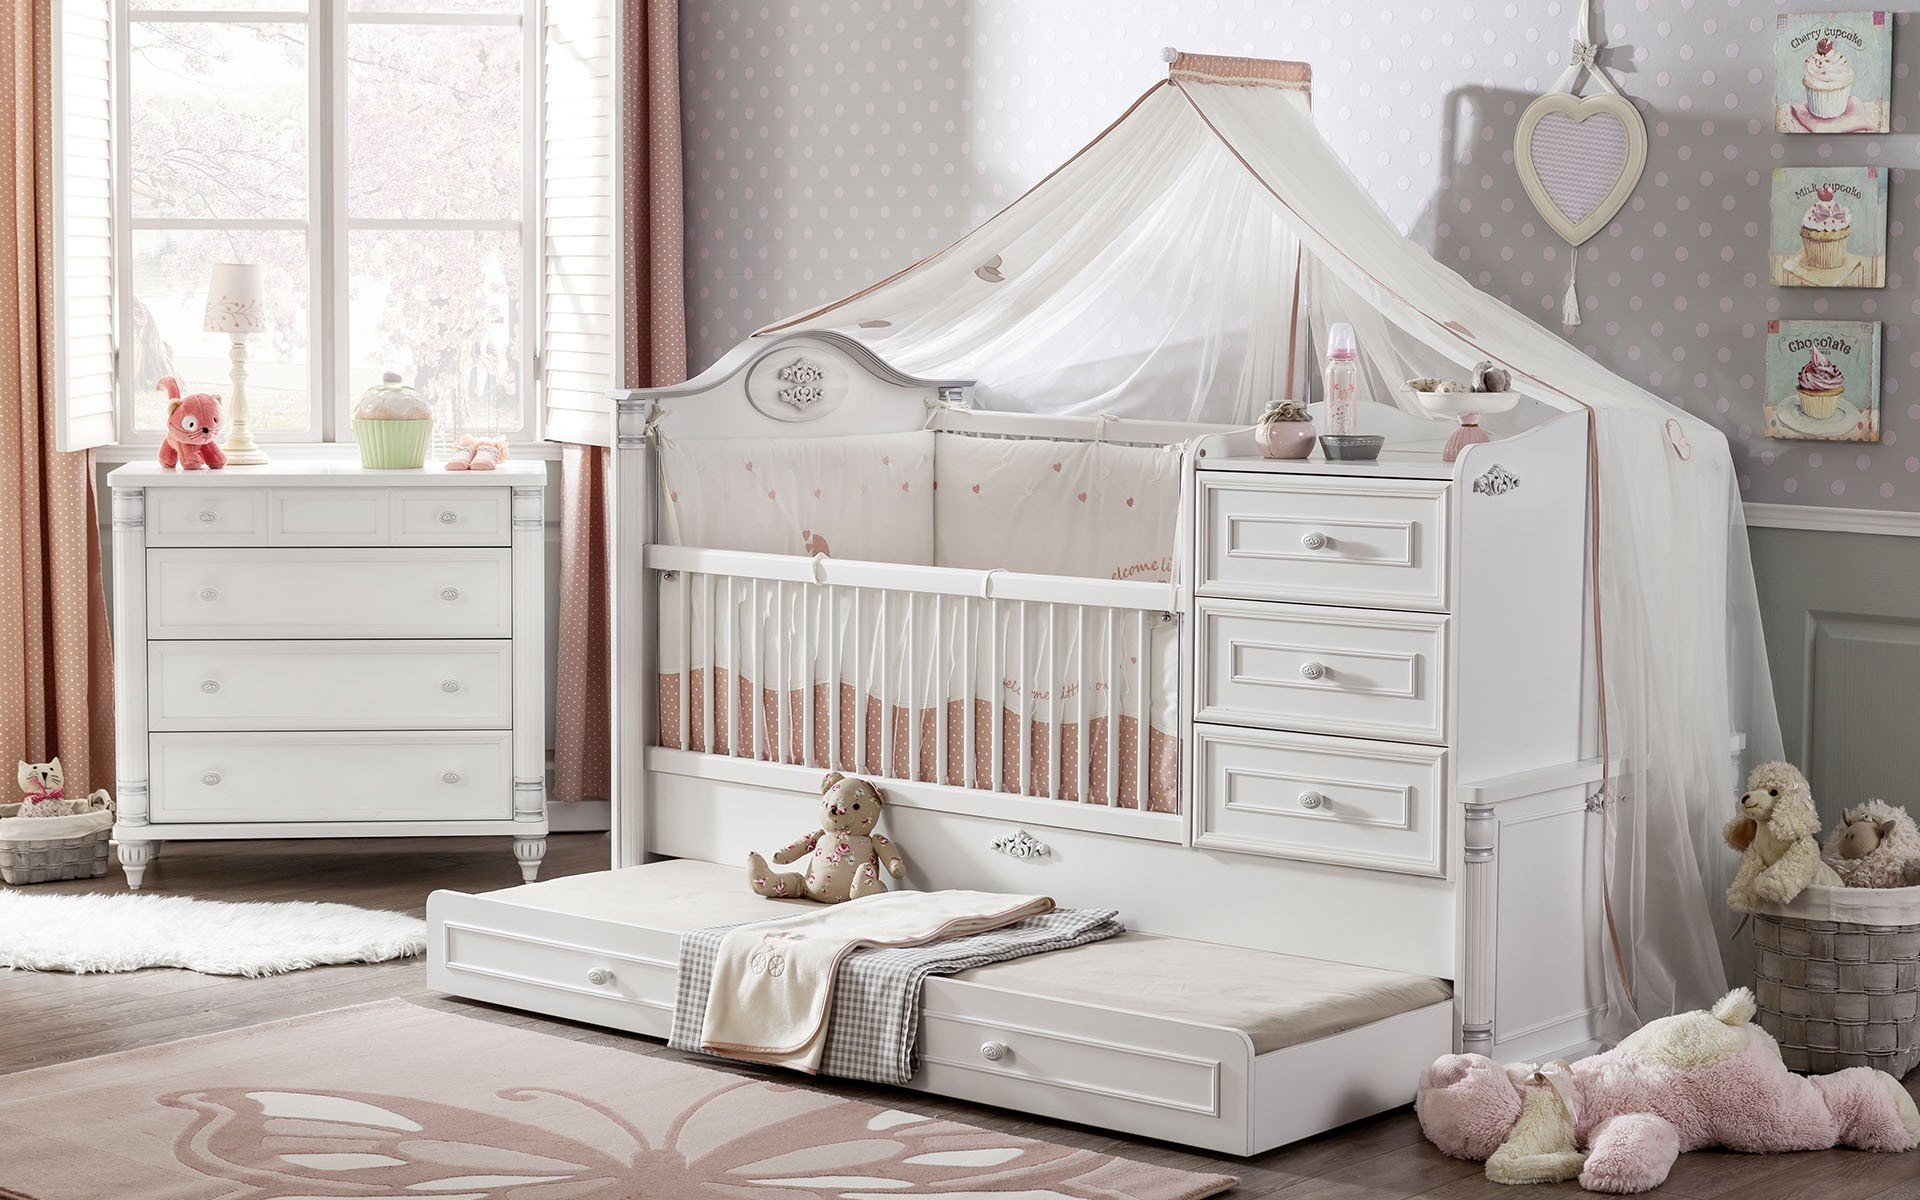 Romantic Baby Babyzimmer-Set